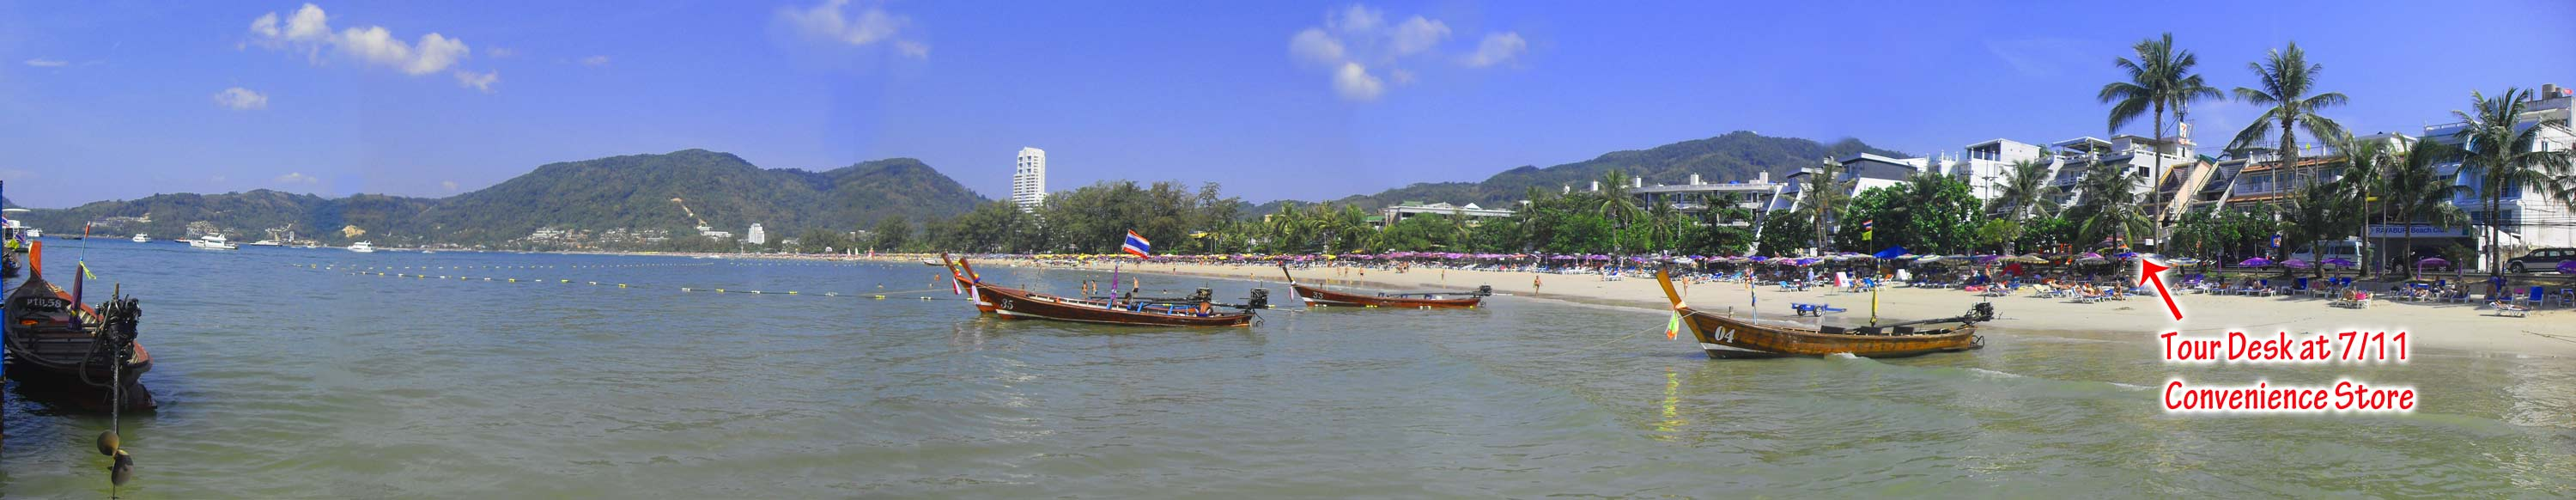 Patong Beach, Swimming, Boating, Fishing, Snorkeling, Phuket